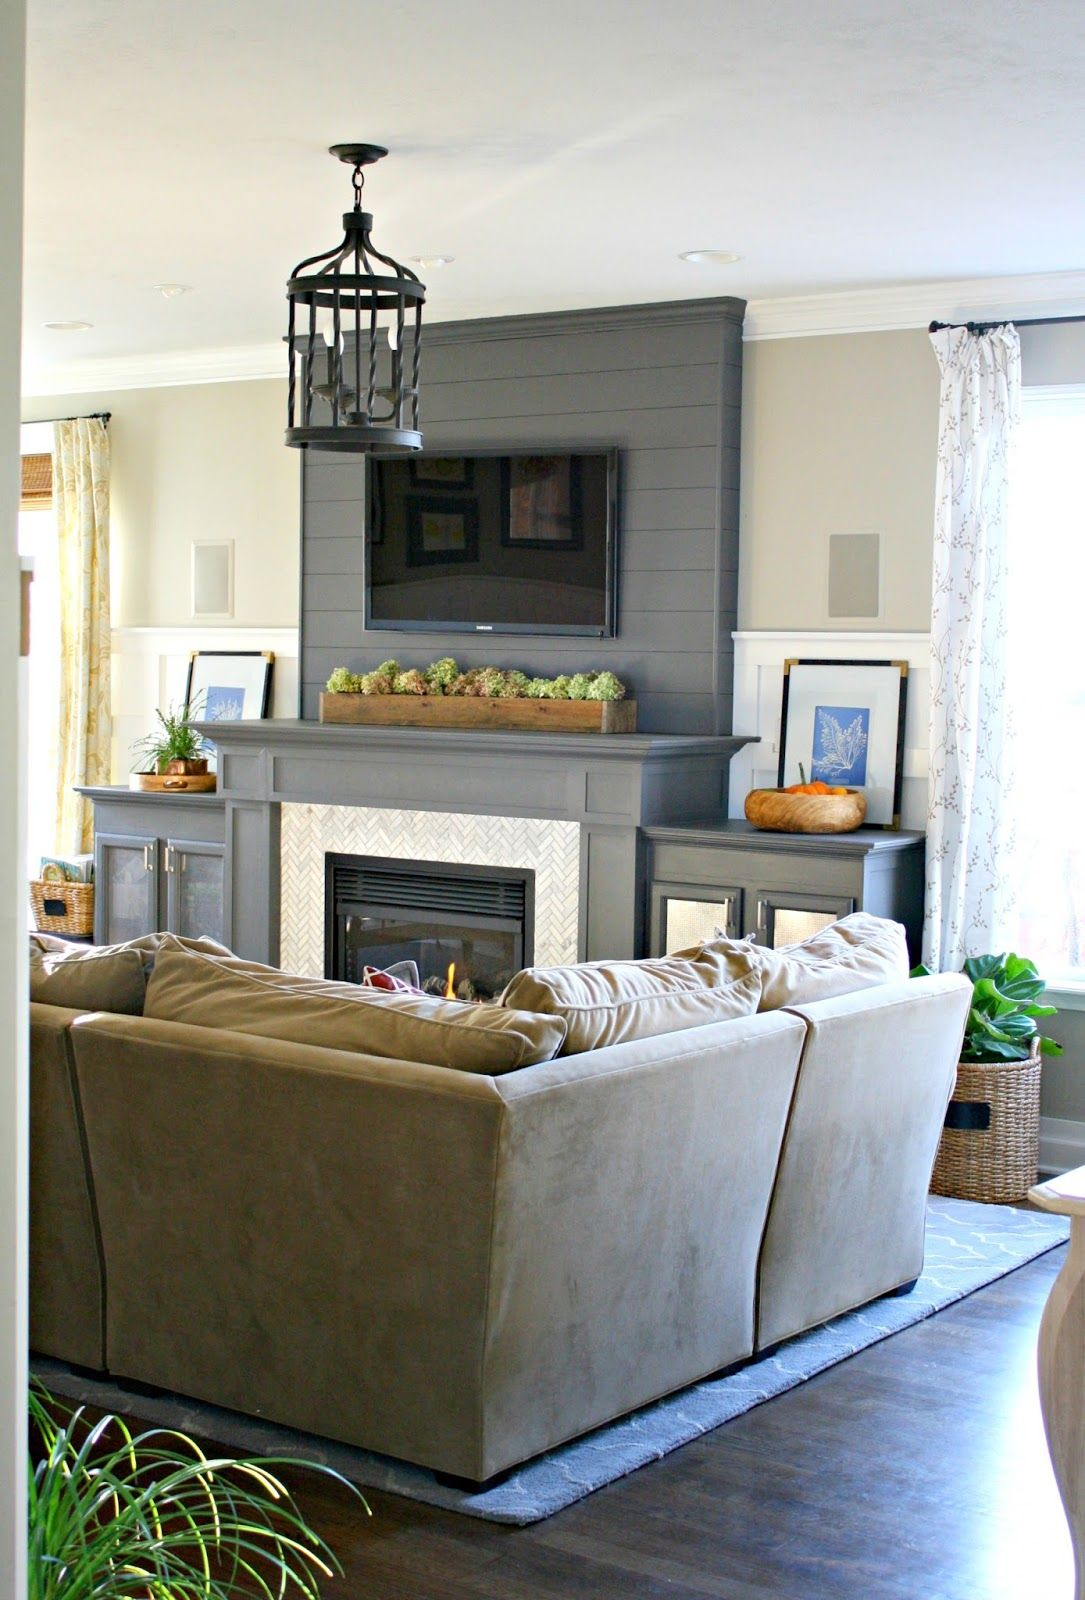 Our home decor living spaces tv over fireplace decor - Pictures of decorated living rooms ...